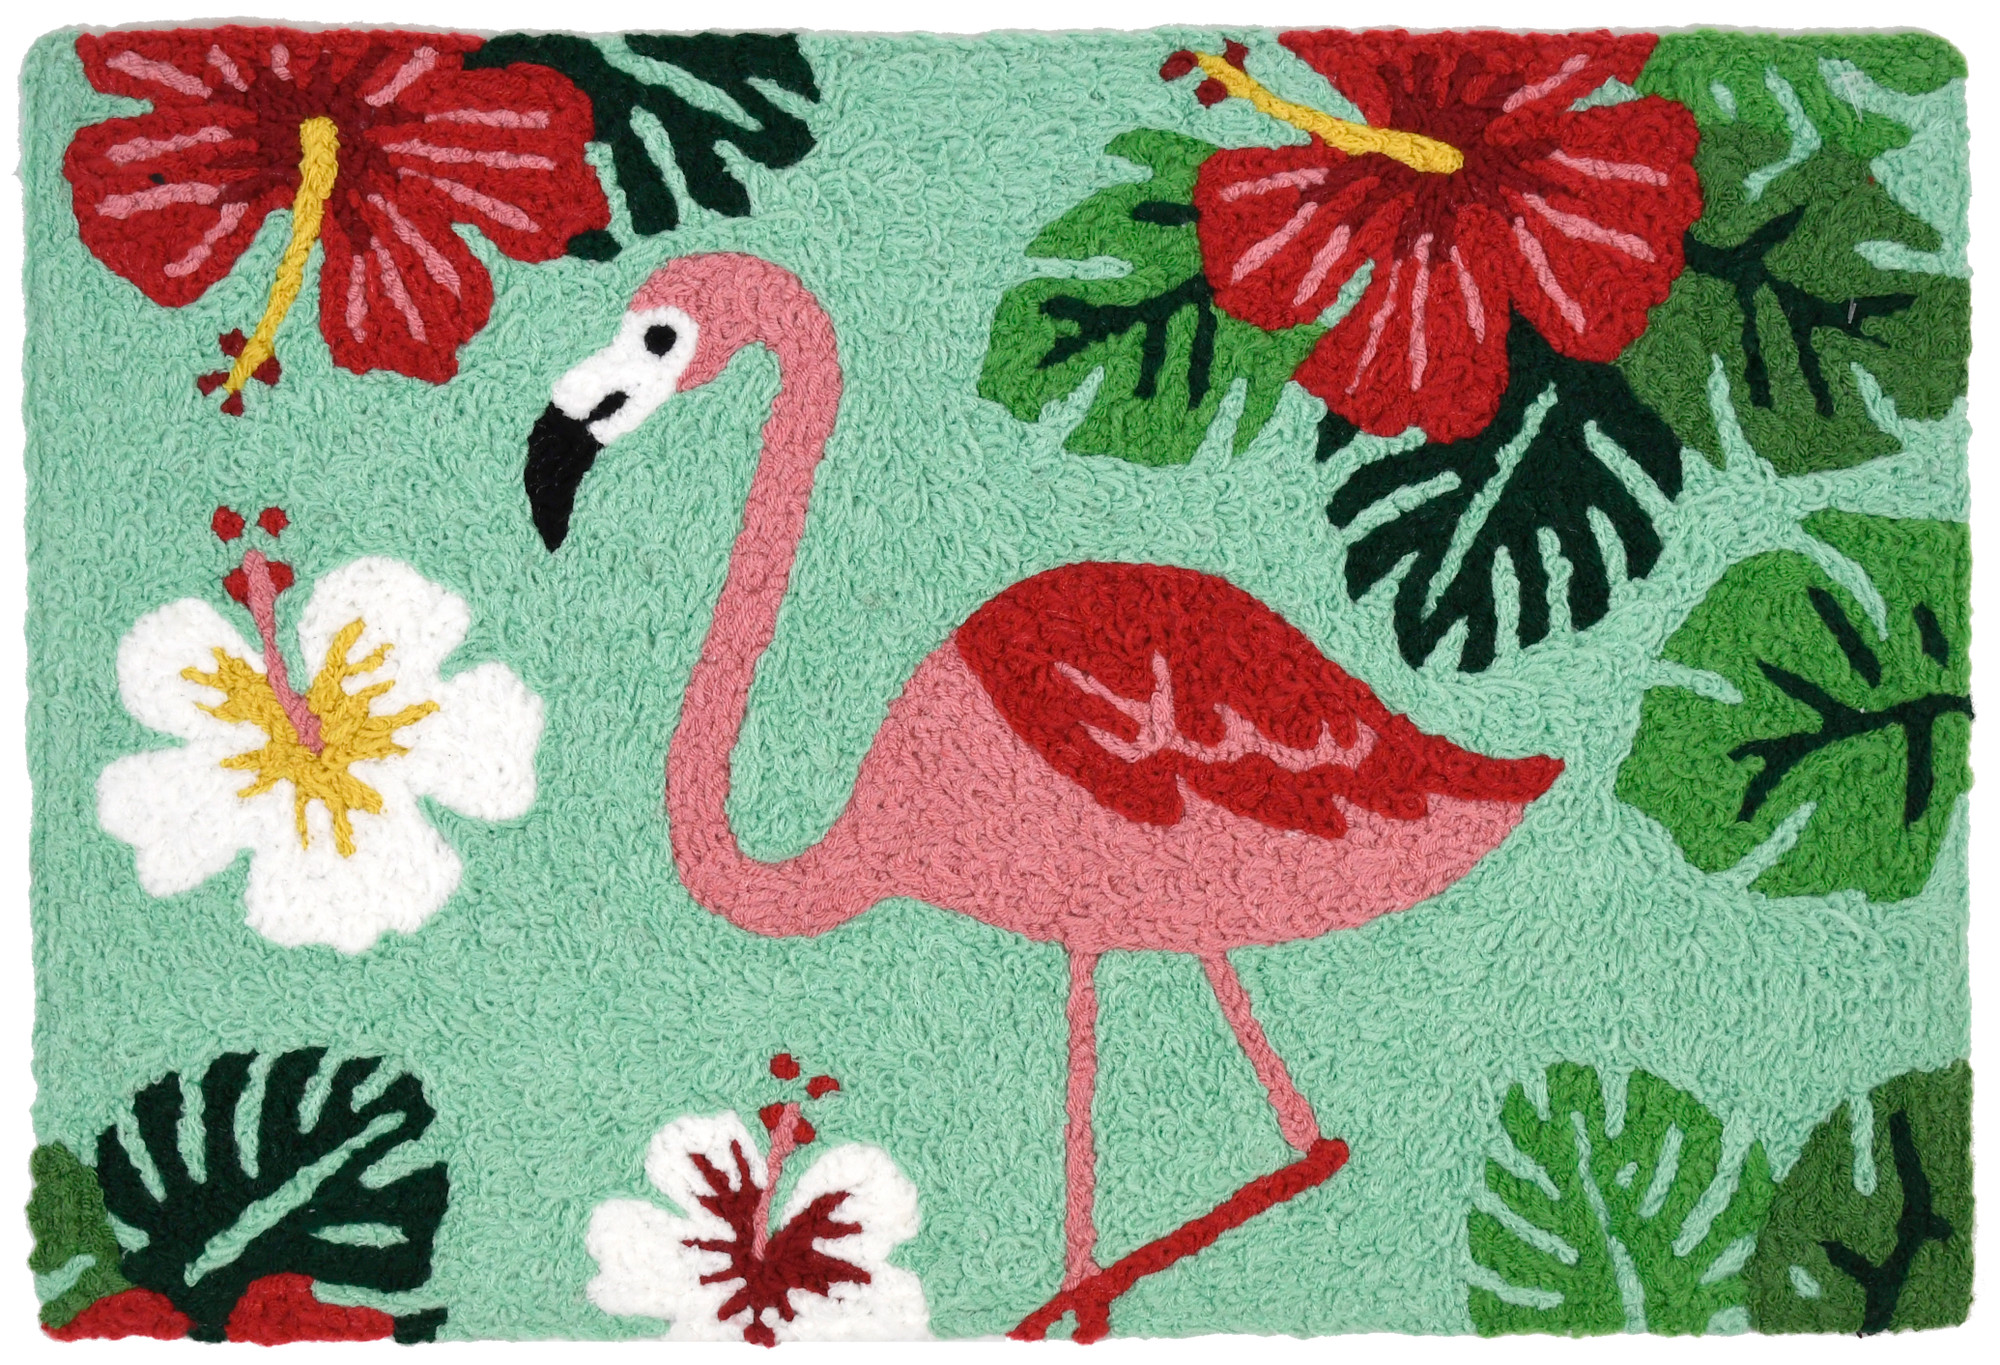 The eye is drawn to the graceful pink flamingo in the center of hibiscus blooms on this Jellybean® accent rugs. Lush leaves and full blooms will be welcome indoors and out with the placement of this machine washable rug. The polyester construction offers durability and easy maintenance of the work of designer Sharon Lee.